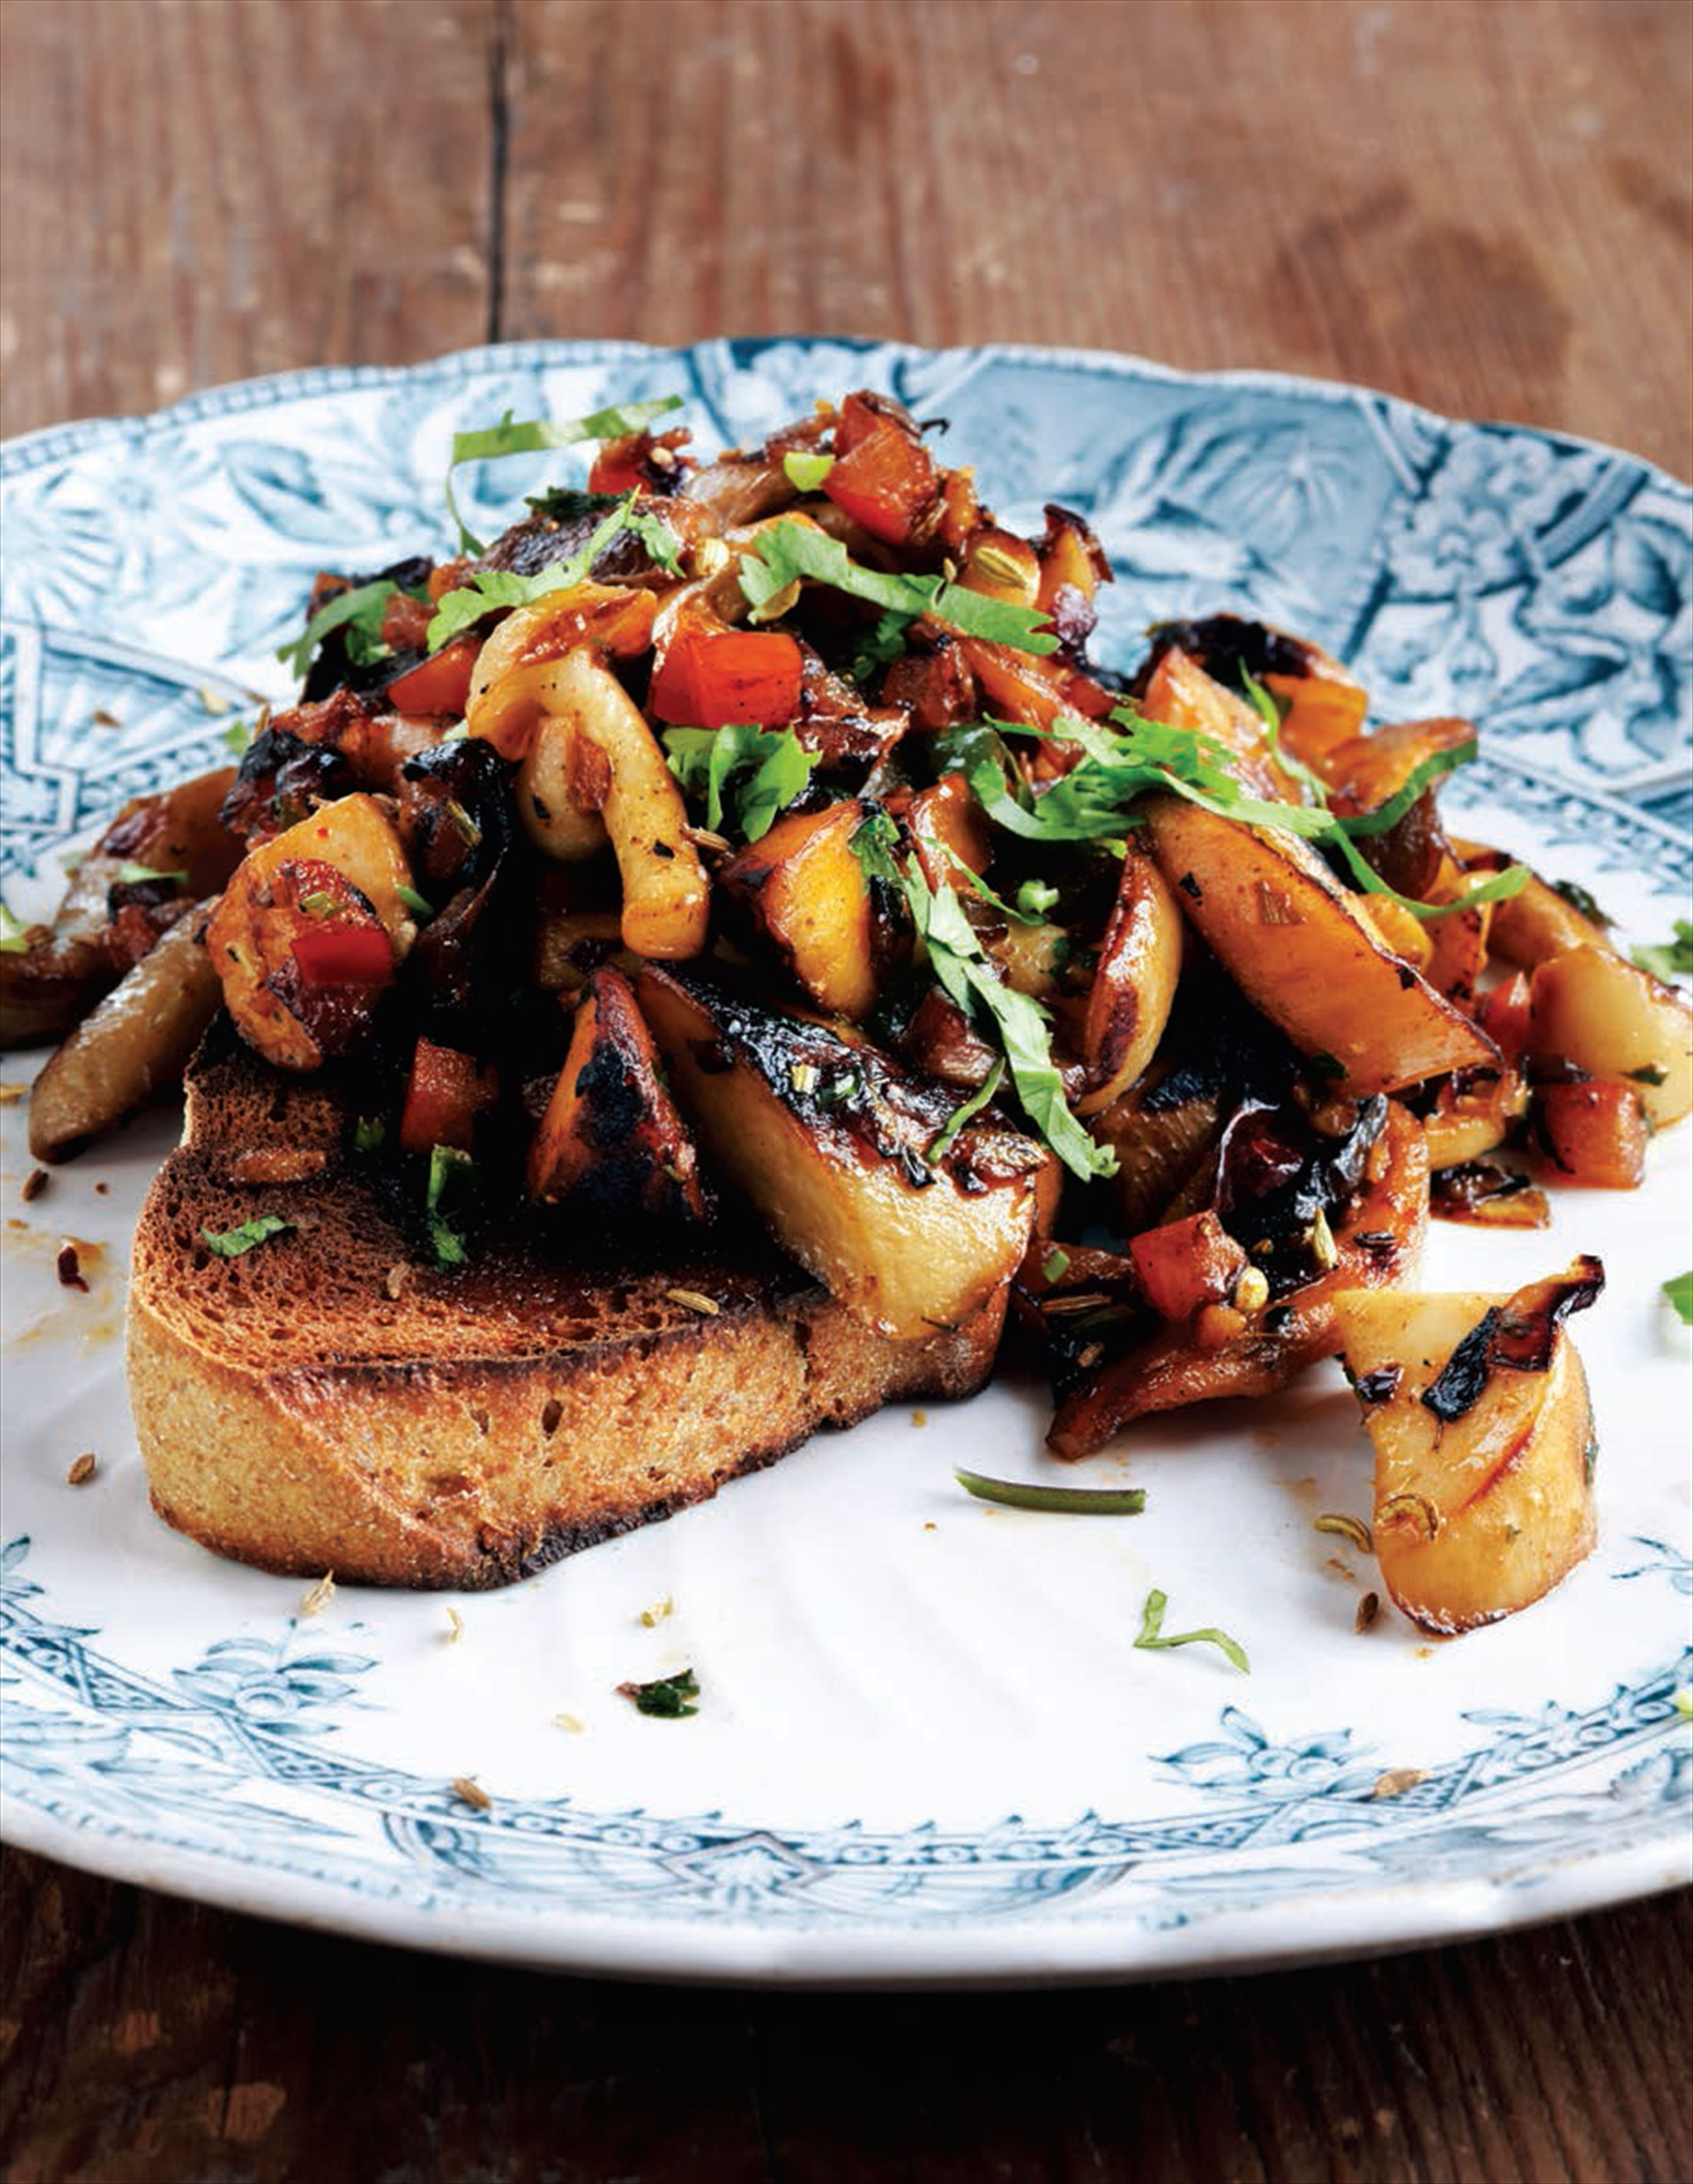 Kadhai-spiced mushrooms on toast